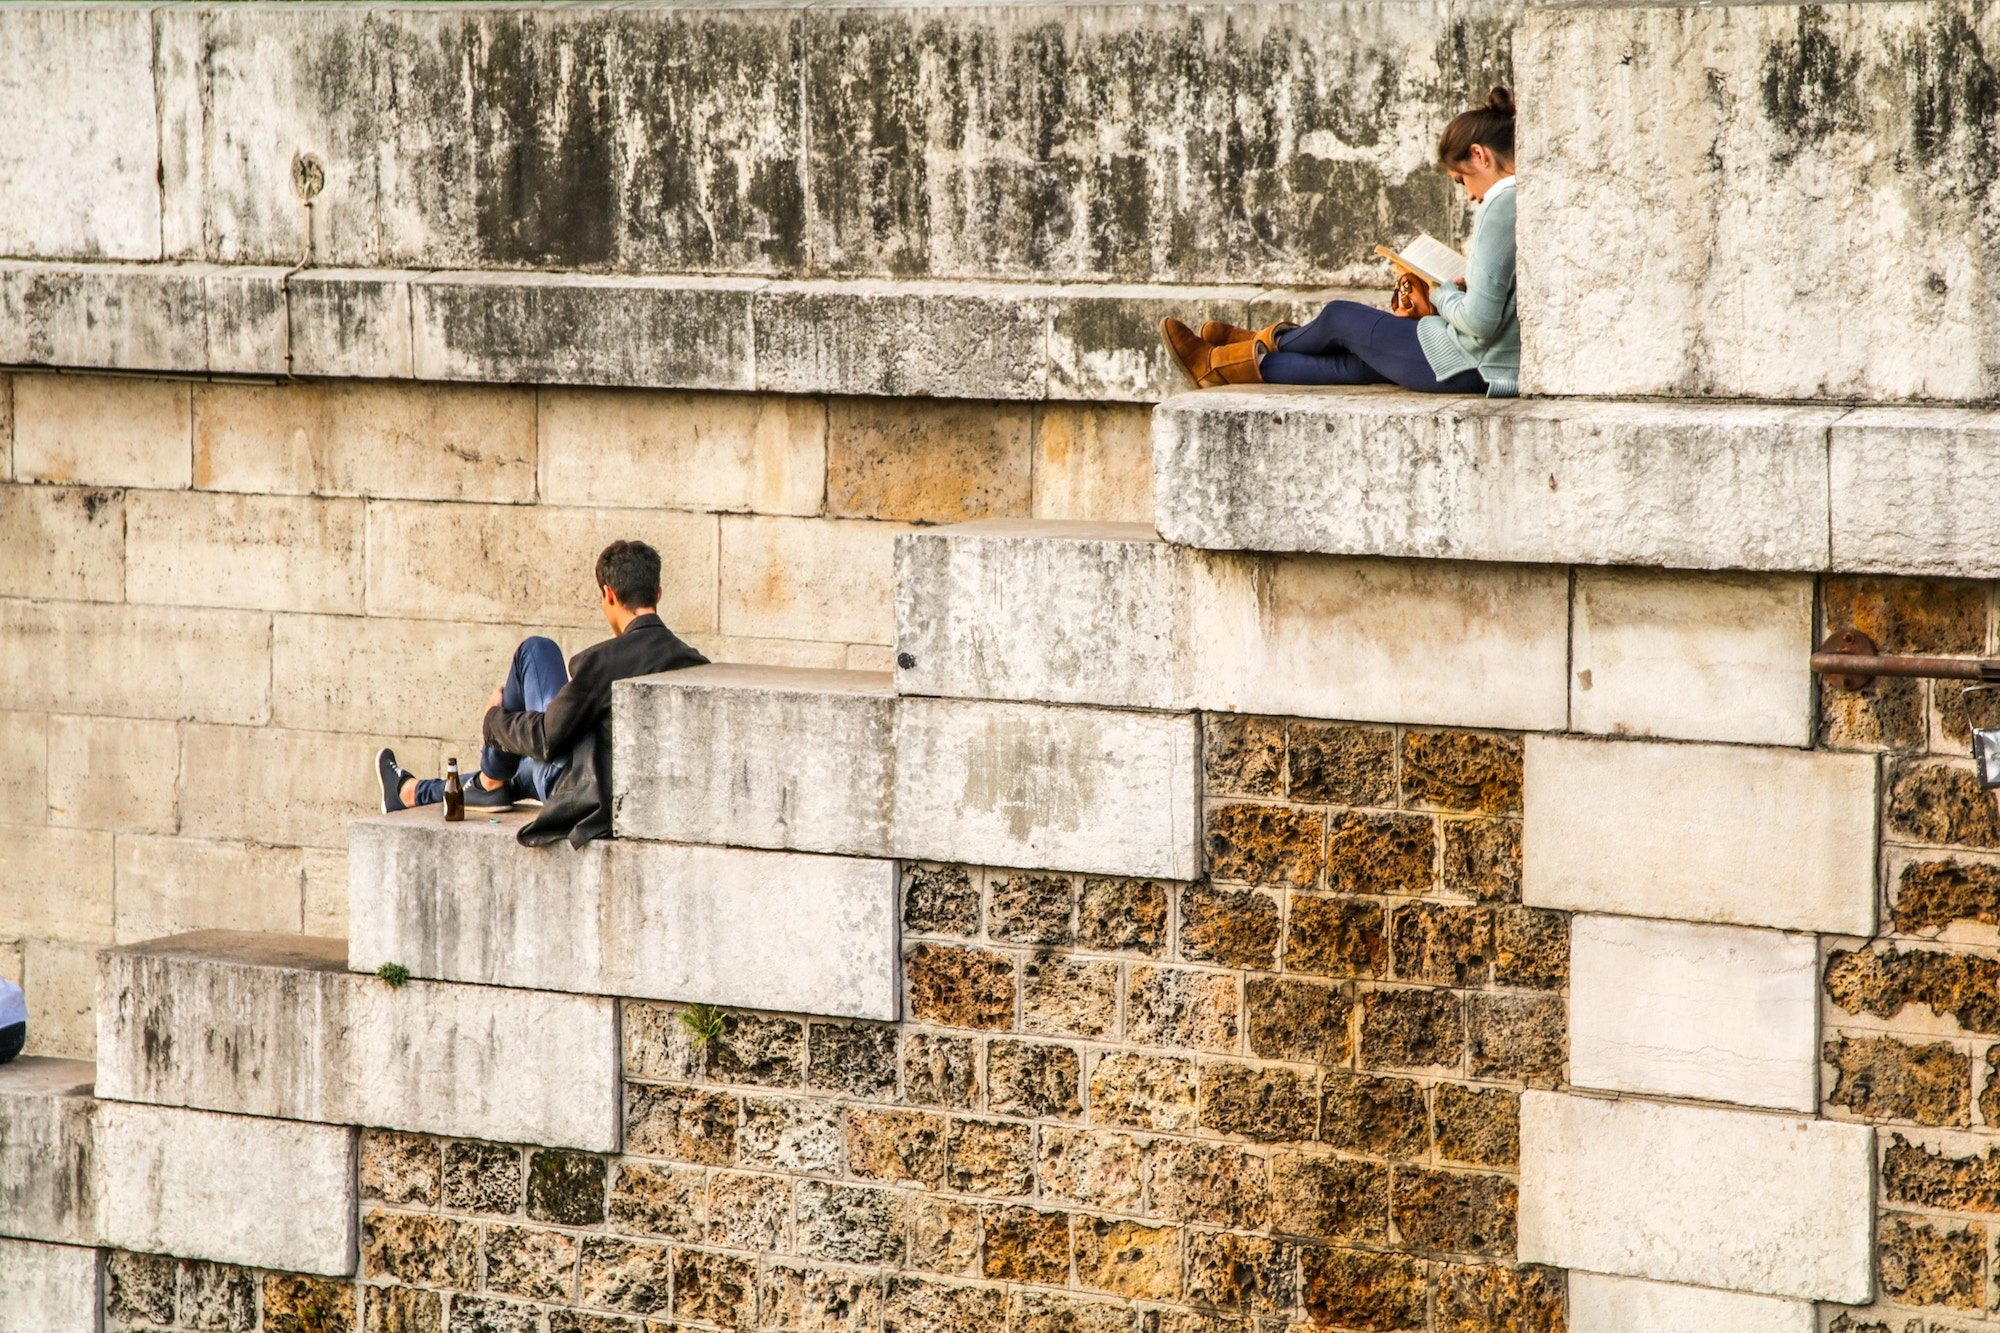 Paris in summer is quiet and it's possible to have its corners to yourself, like these two people reading quietly on the banks of the River Seine.